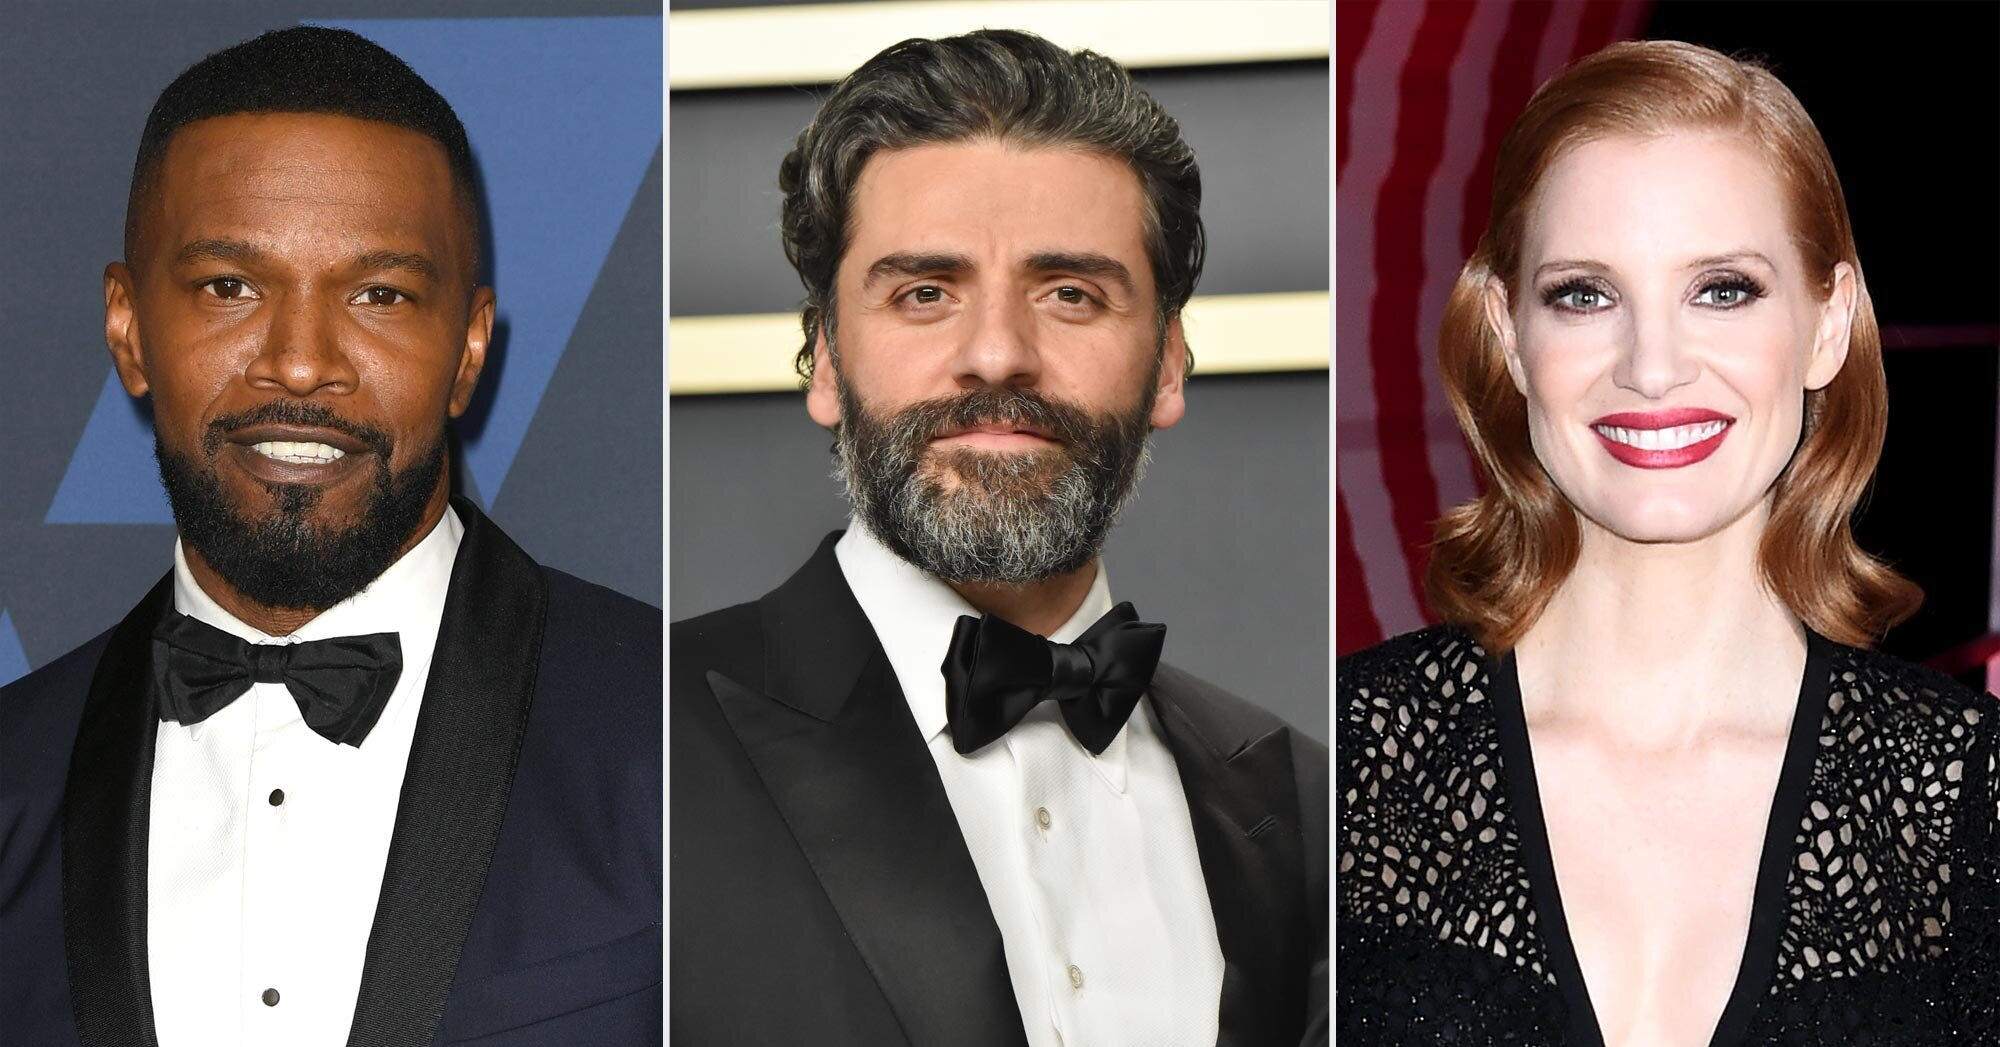 Jamie Foxx, Oscar Isaac, Jessica Chastain, and more reveal their first fandoms